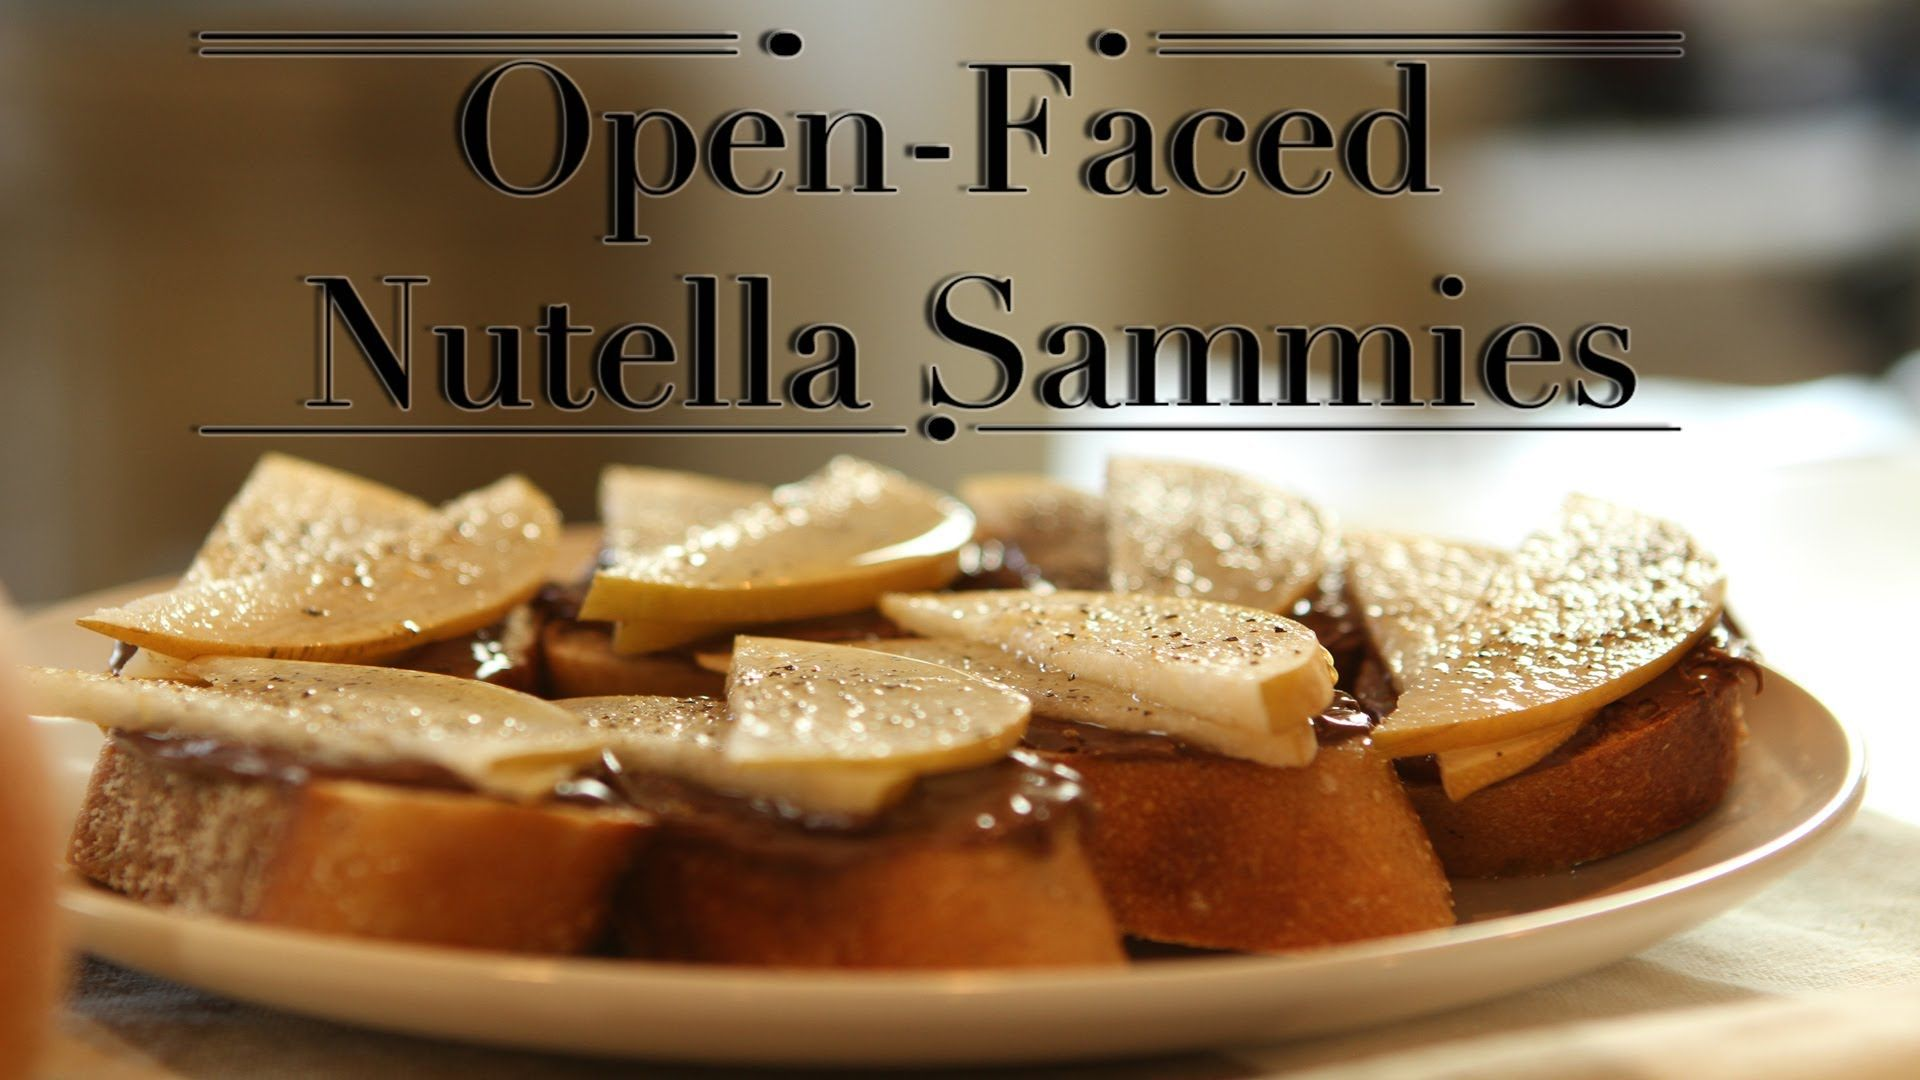 The Best Way to Eat #Nutella: On An Open-Faced Pear Sandwich